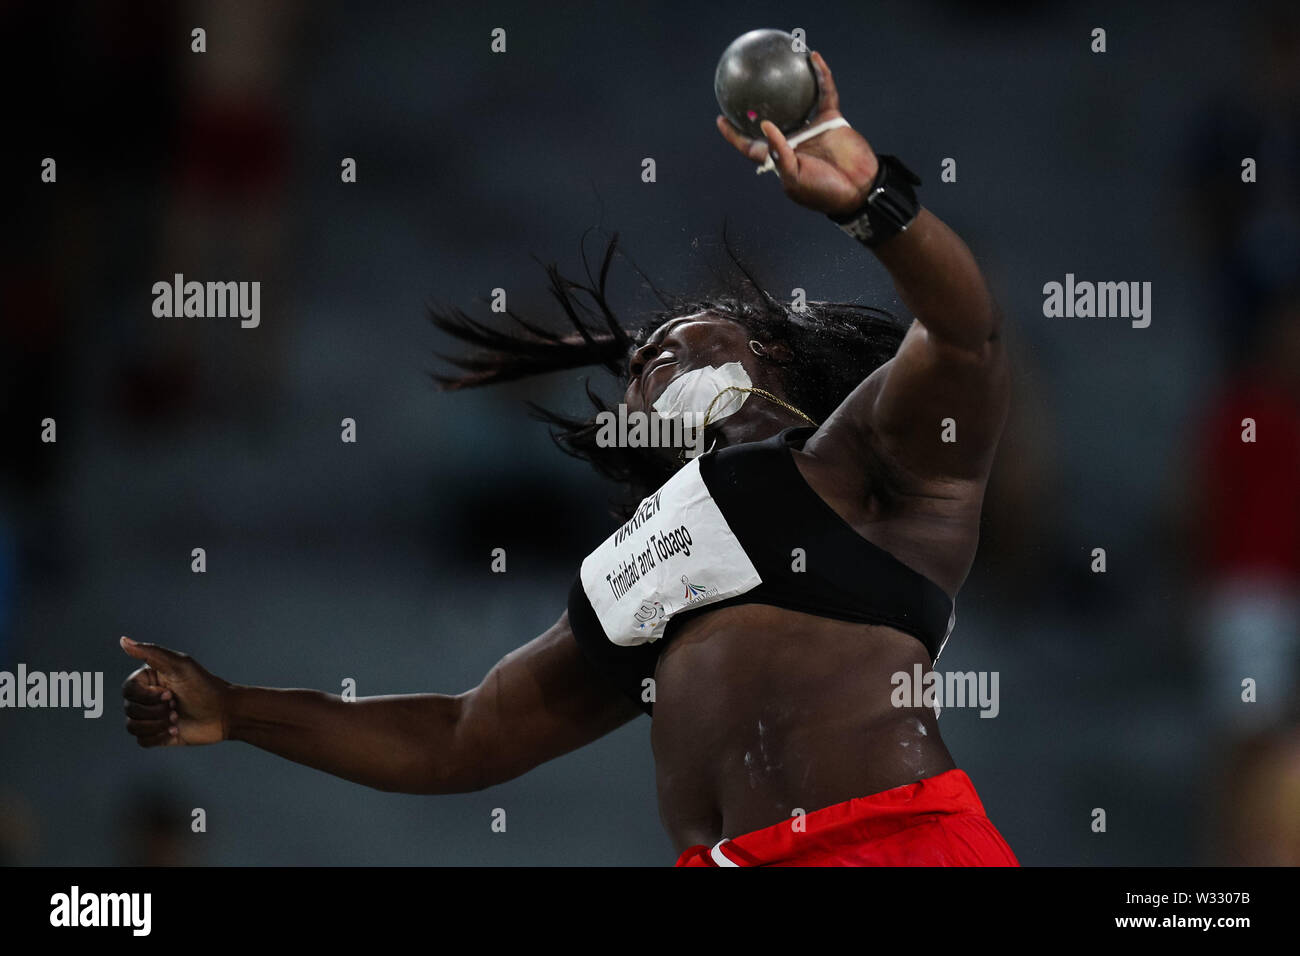 Naples, Italy. 11th July, 2019. Portious Warren of Trinidad and Tobago competes during the final of Women's Shot Put of Athletics at the 30th Summer Universiade in Naples, Italy, July 11, 2019. Warren won the silver medal with 17.82 meters. Credit: Zheng Huansong/Xinhua/Alamy Live News - Stock Image